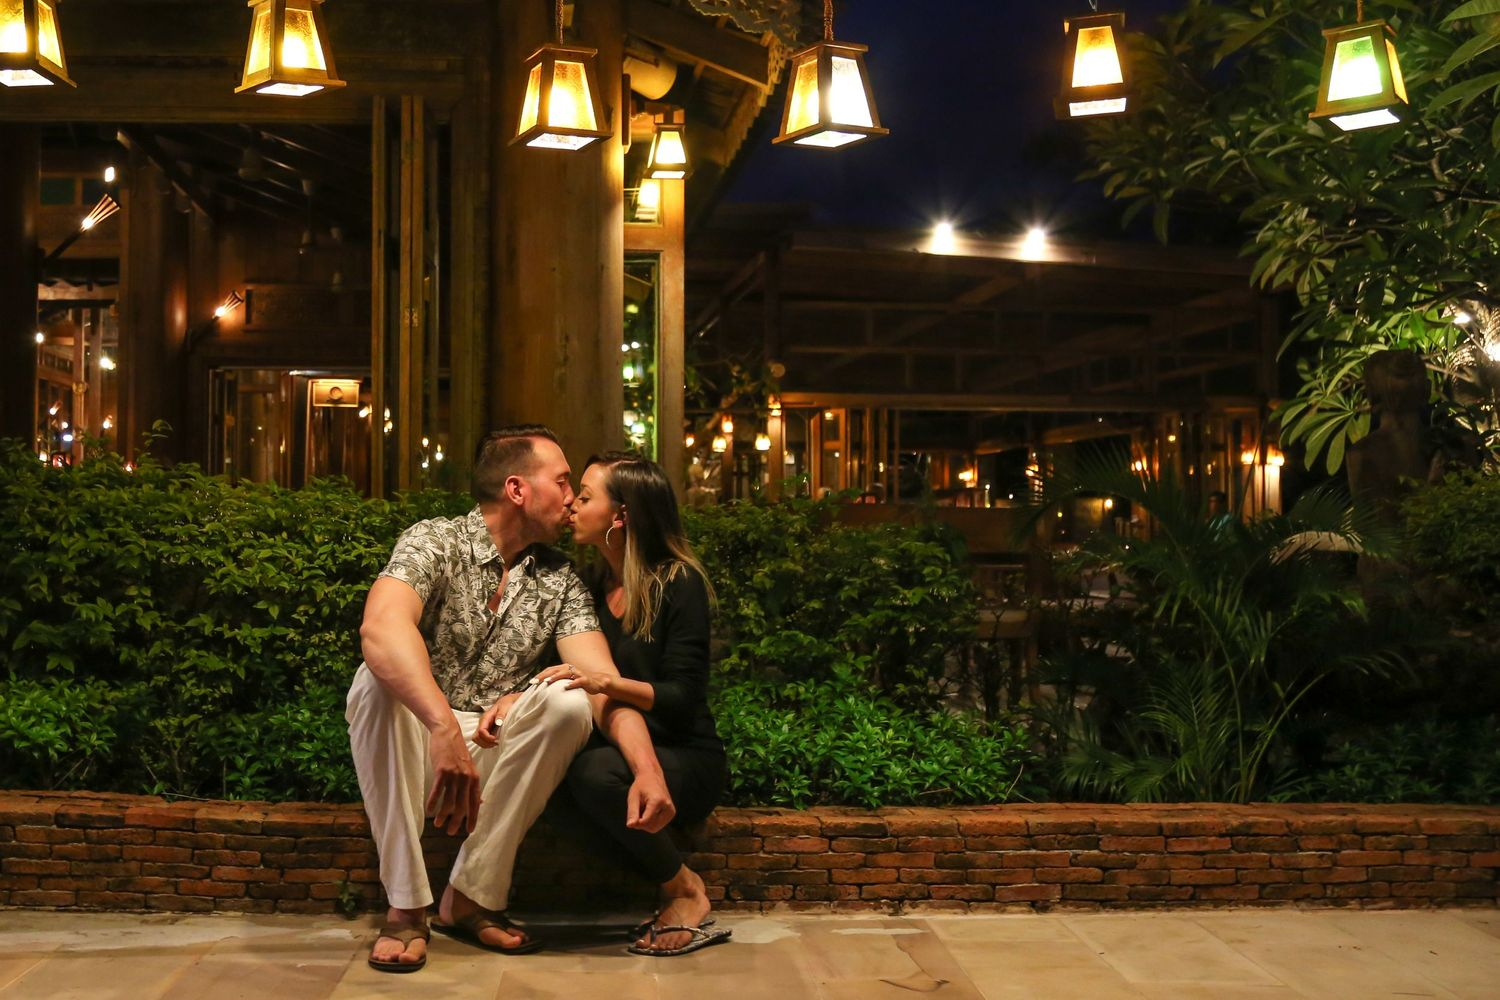 Husband and wife sitting near plants kissing in Thailand